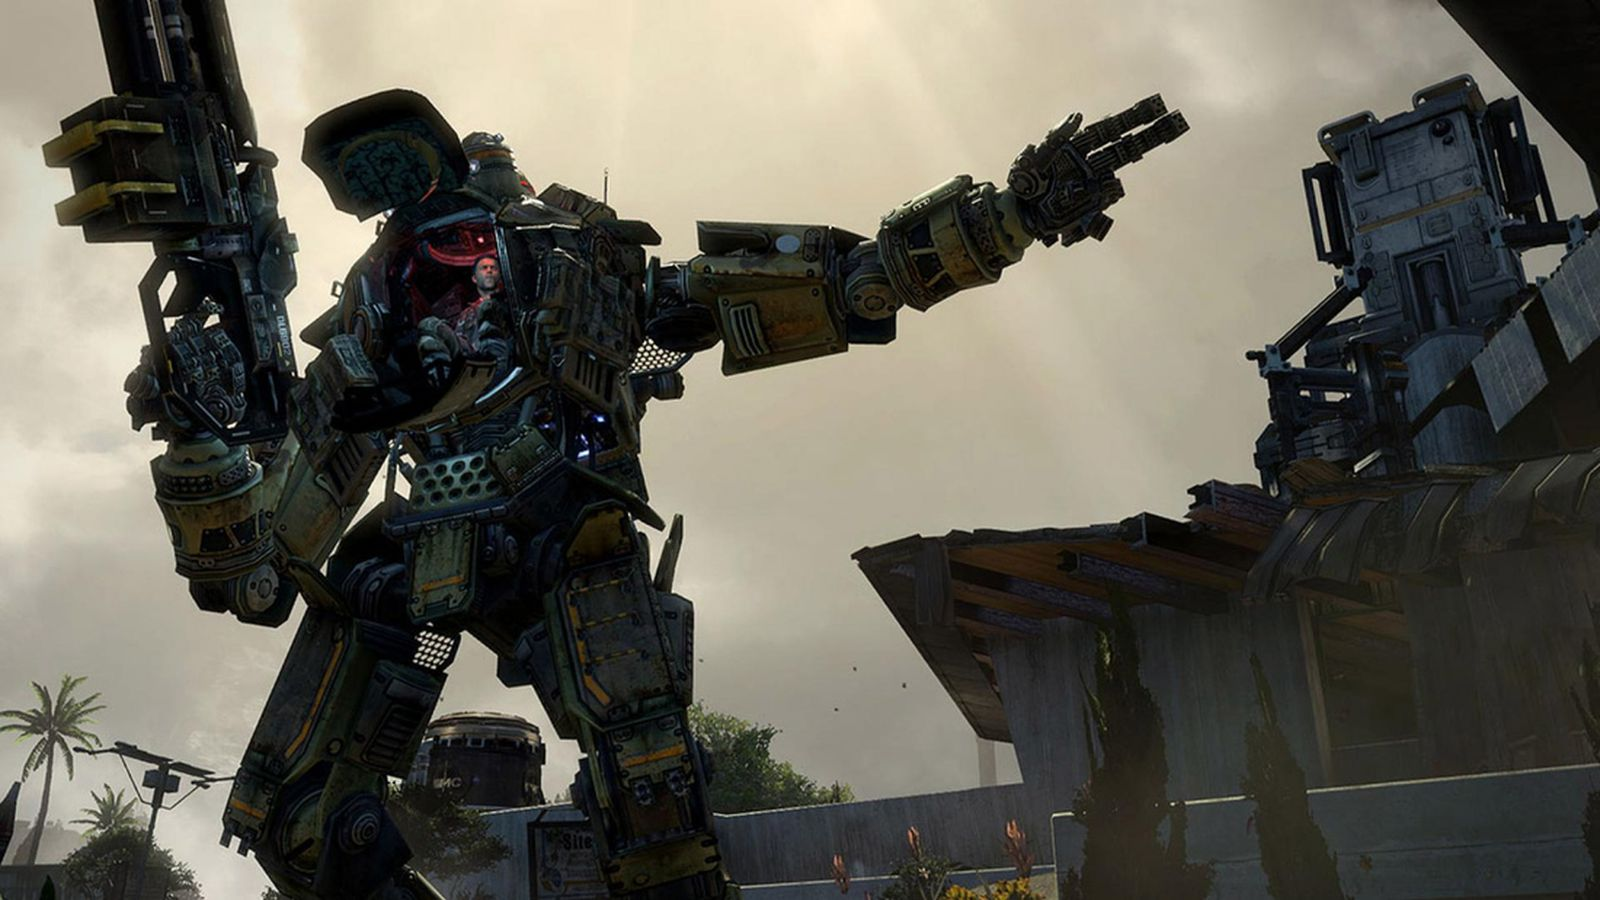 Titanfall 2 - Titanfall 2 PC system requirements